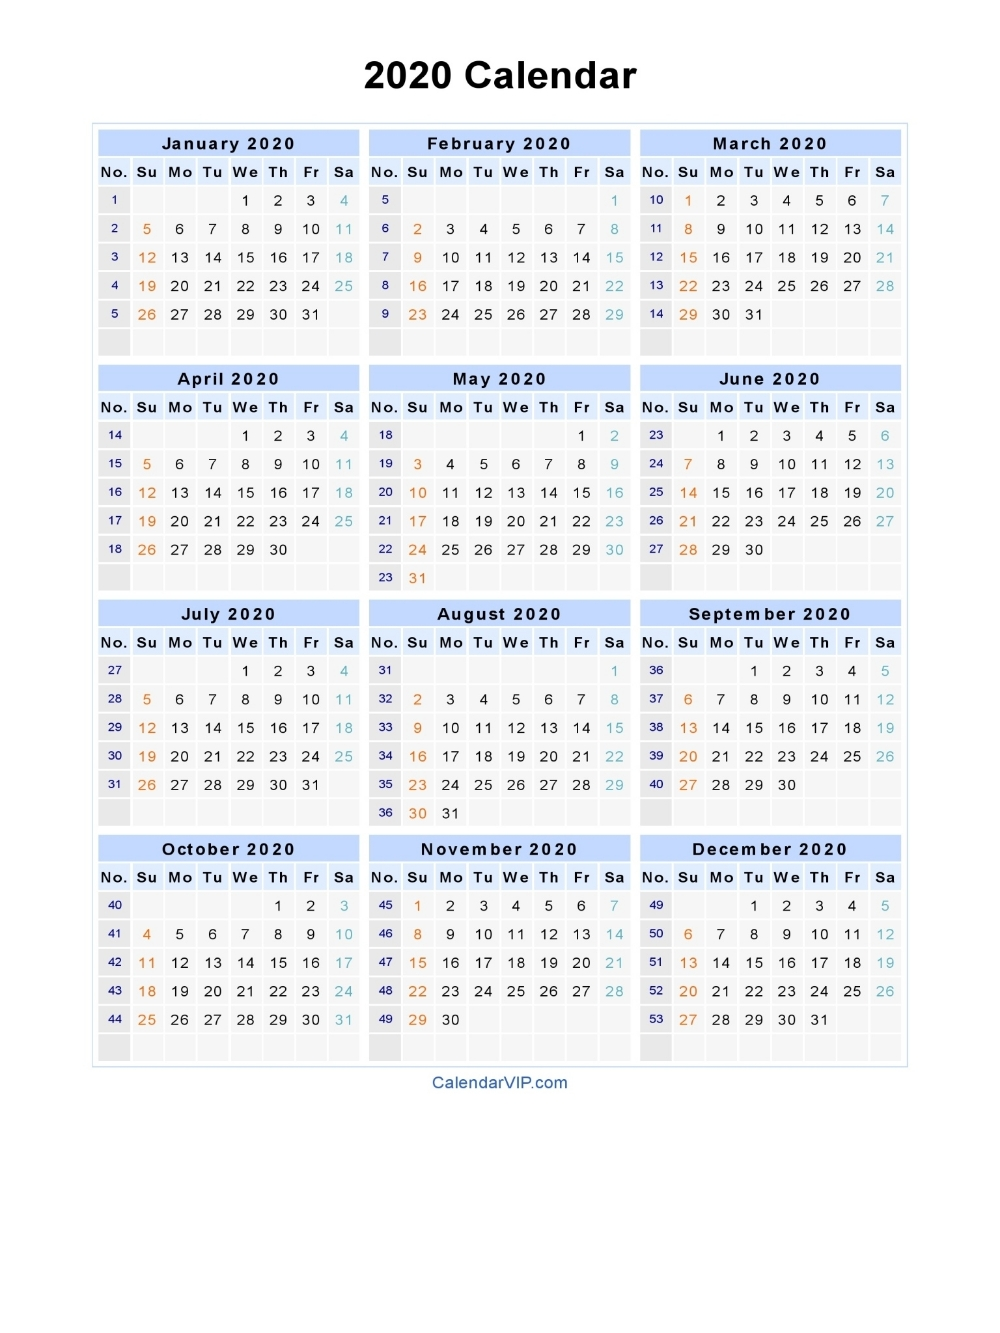 2020 Calendar - Blank Printable Calendar Template In Pdf intended for Yearly Monday To Sunday Calendar 2020 With Week Numbers